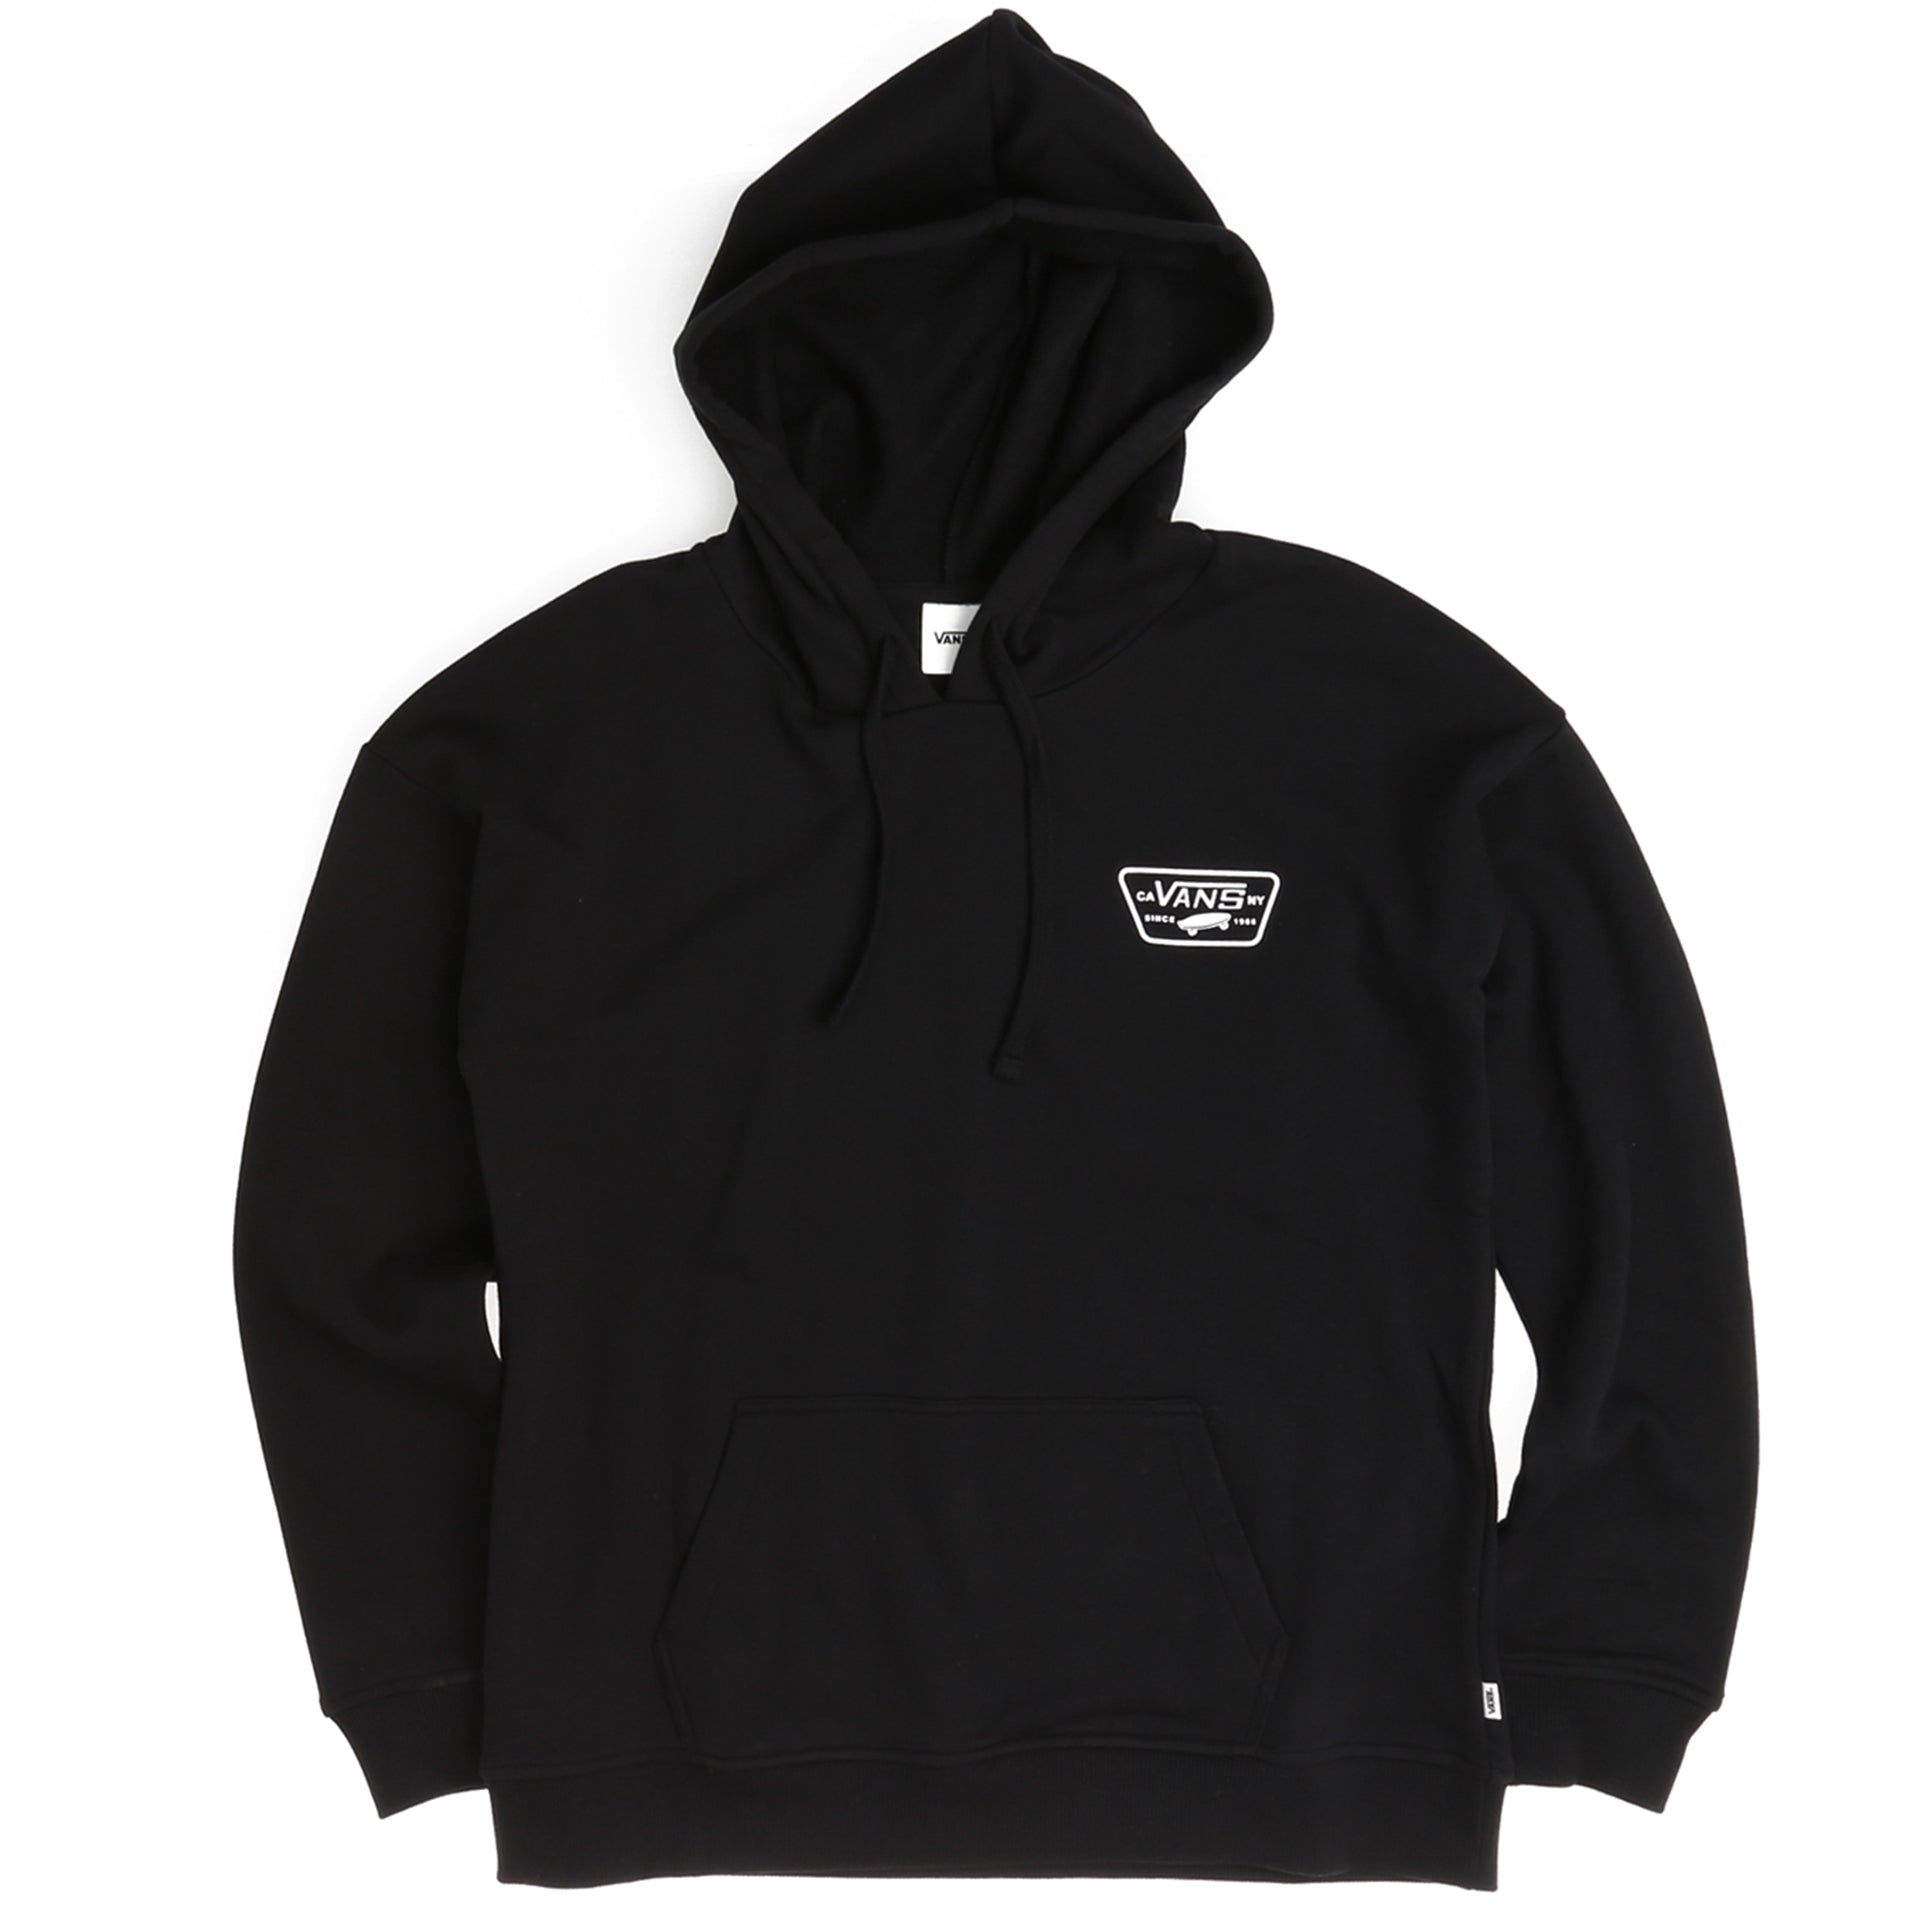 d6f5165254f Vans Full Patch Pullover Hoodie - Black - New Star